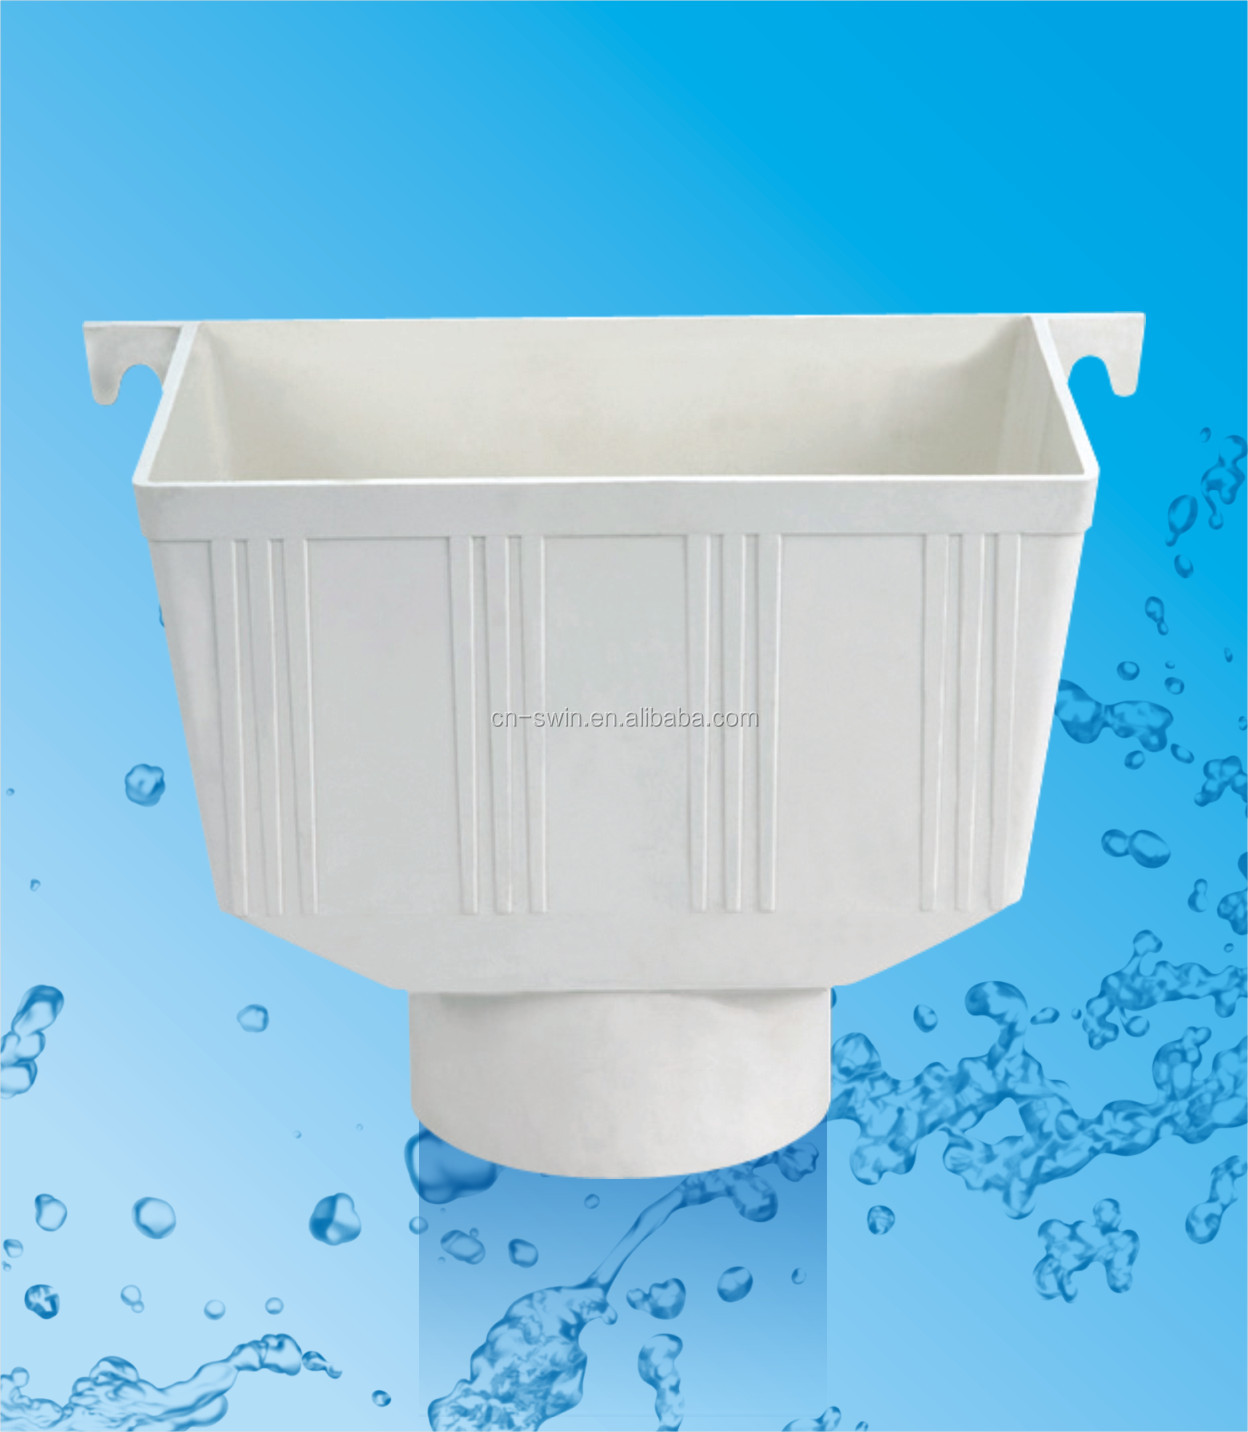 4 Inch Pvc Water Pipe Fitting/ Rain Roof Drain Water Gutter System - Buy  Pvc Sanitary Pipes Fittings,Pvc Seamless Pipe Fittings,4 Inch Pvc Fitting